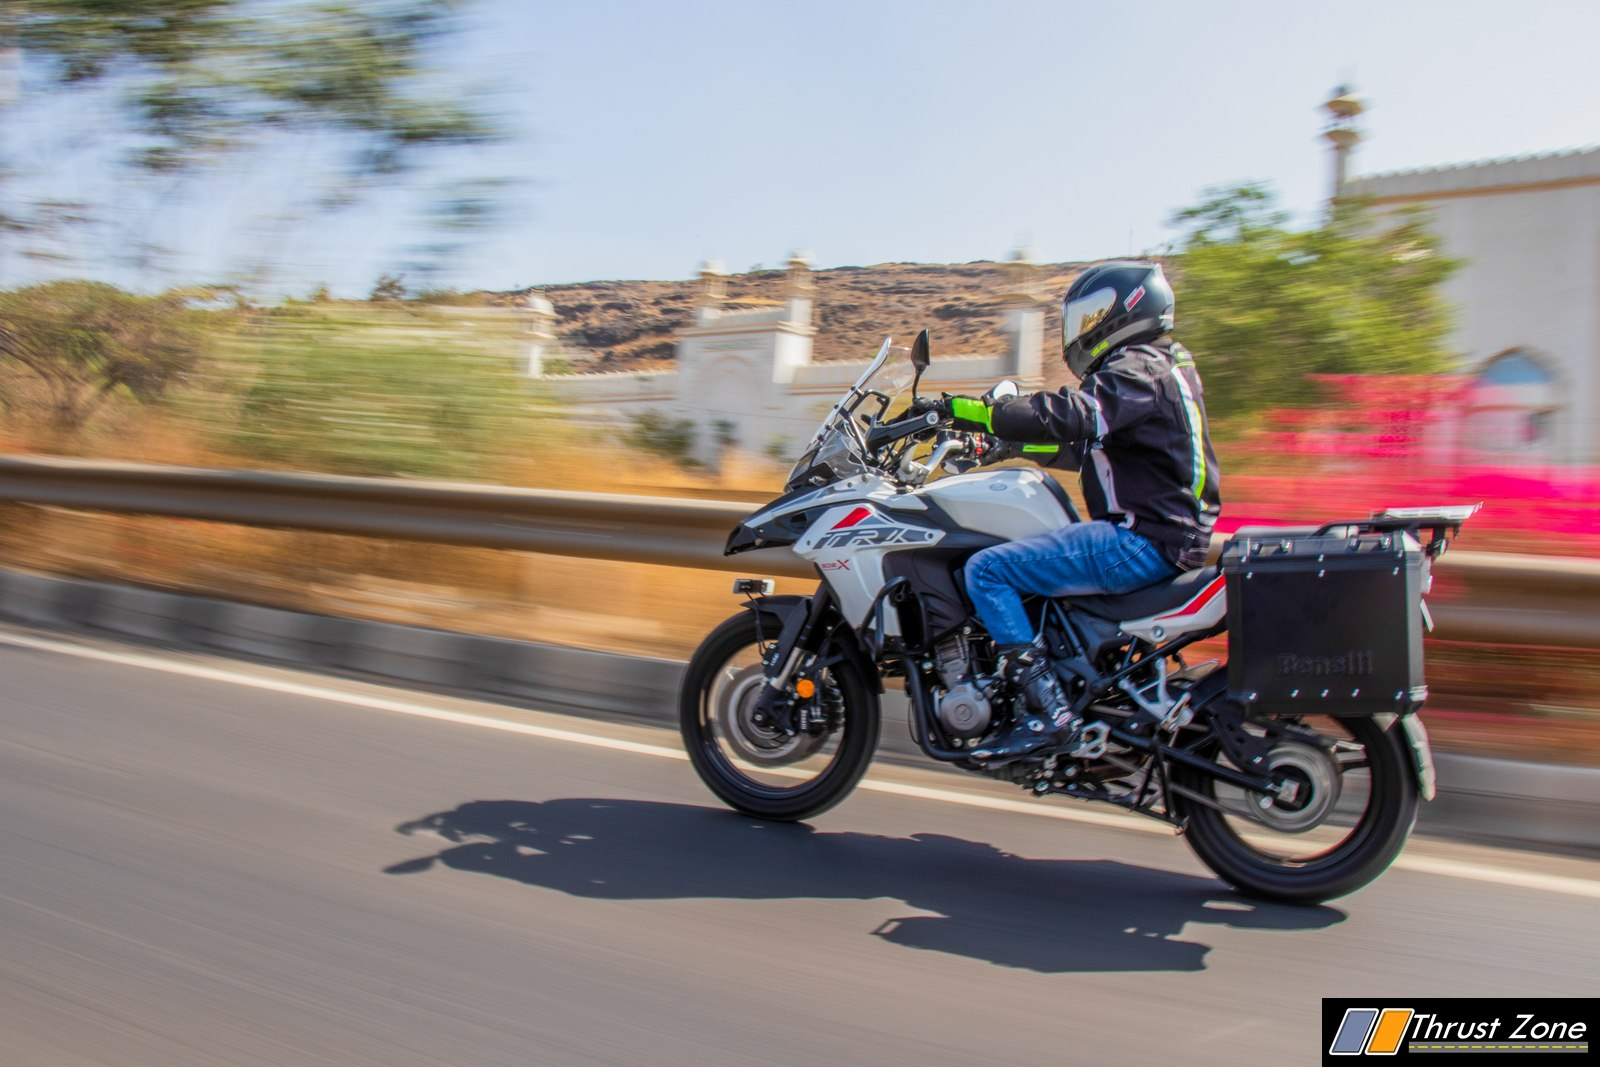 https://www.thrustzone.com/wp-content/uploads/2019/03/Benelli-TRK-502X-India-Review-26.jpg